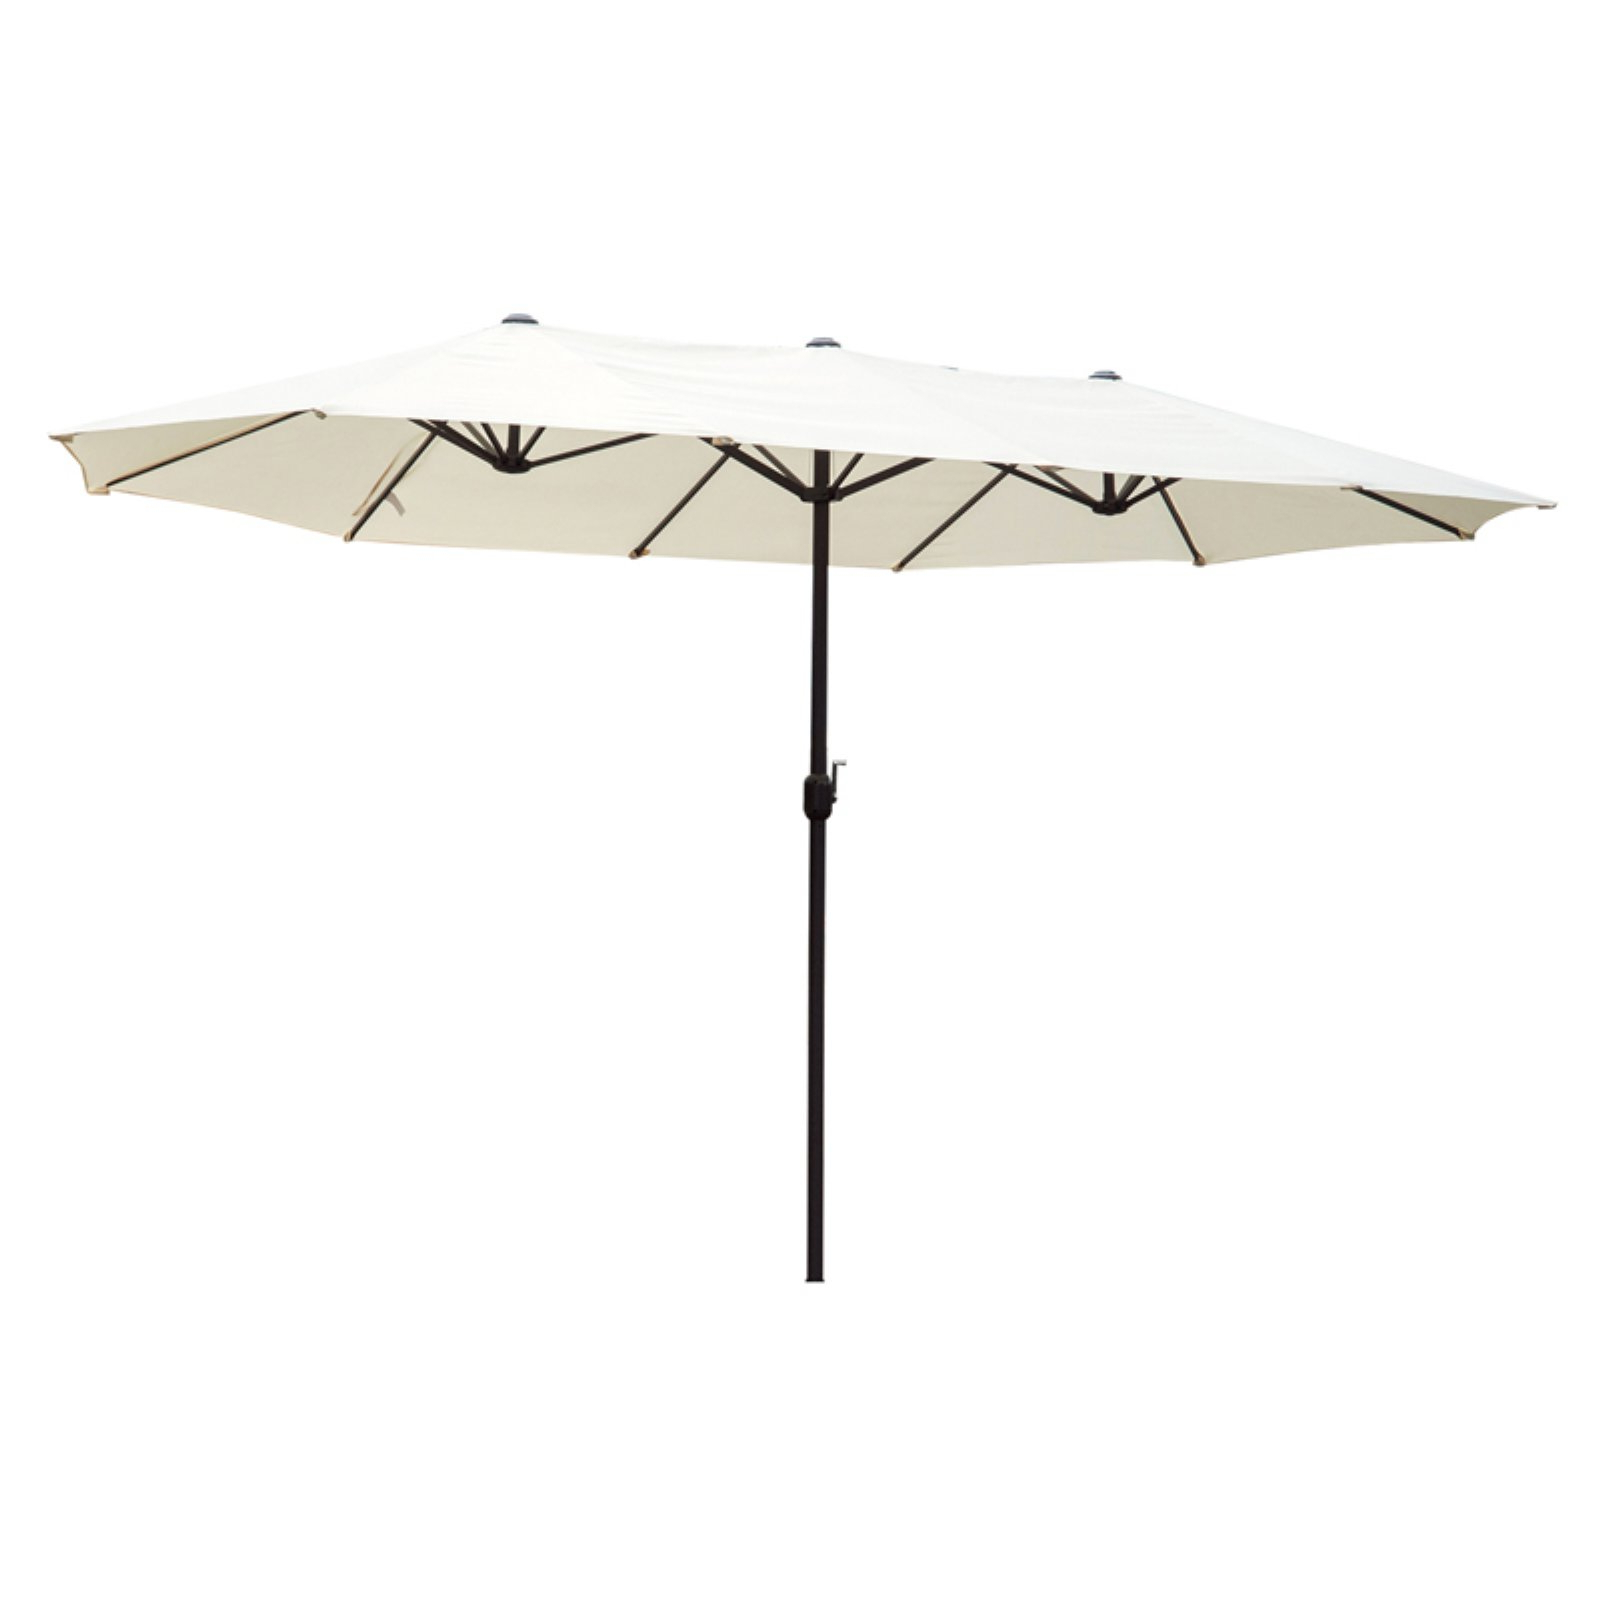 Outsunny 15 Ft. Steel Double Sided Patio Umbrella For Preferred Lagasse Market Umbrellas (Gallery 4 of 20)